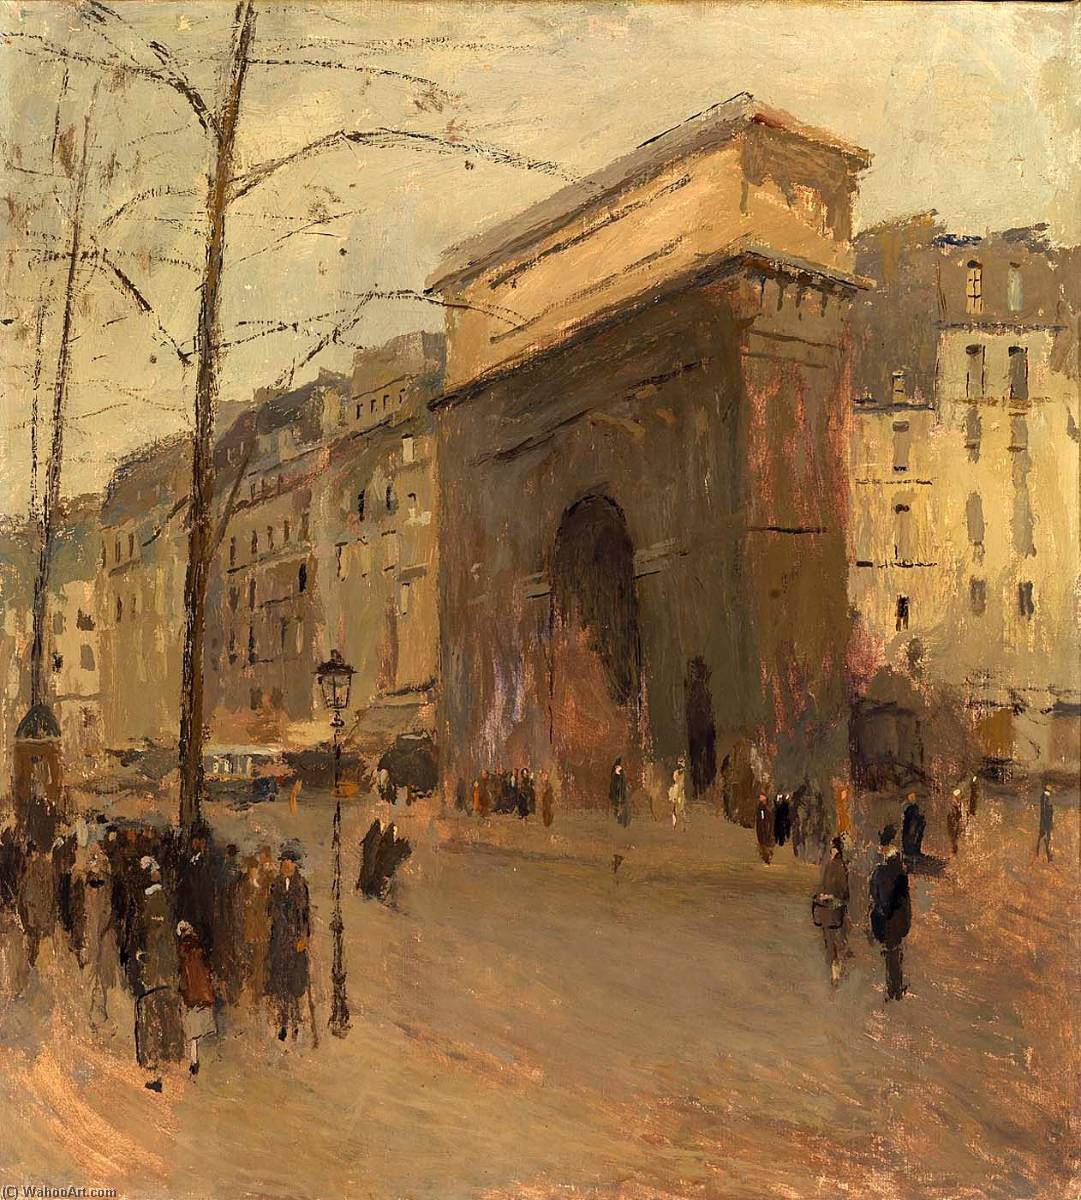 Order Reproductions | Porte St. Denis by Frank Edwin Scott | Most-Famous-Paintings.com